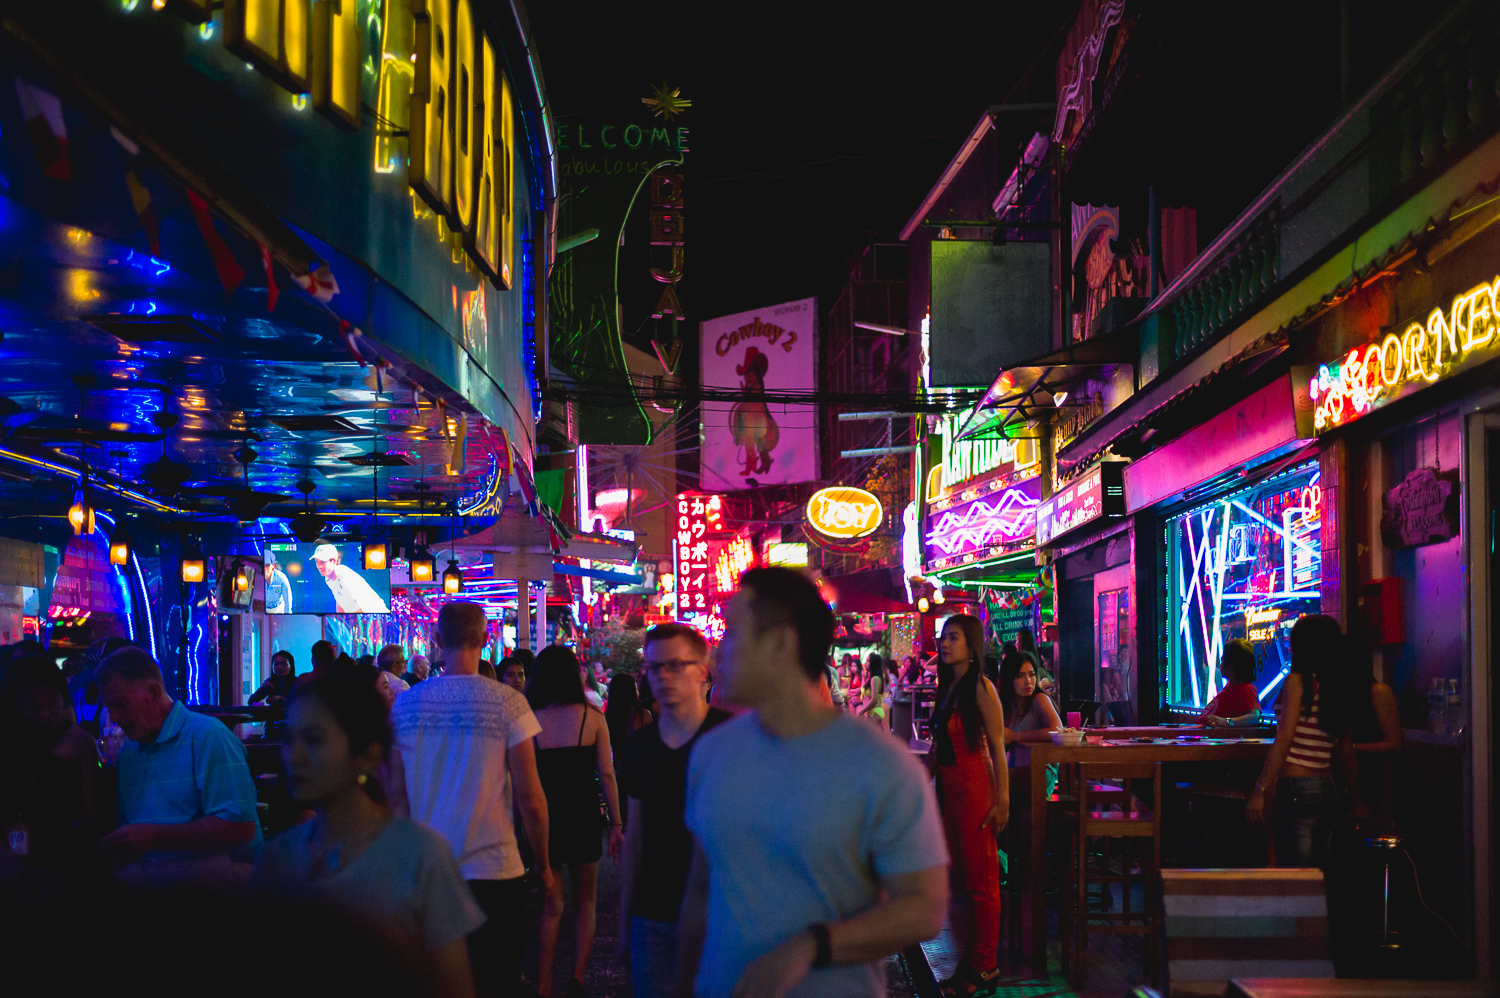 The area is not so big, but there is a cluster of bars and establishments along the alley